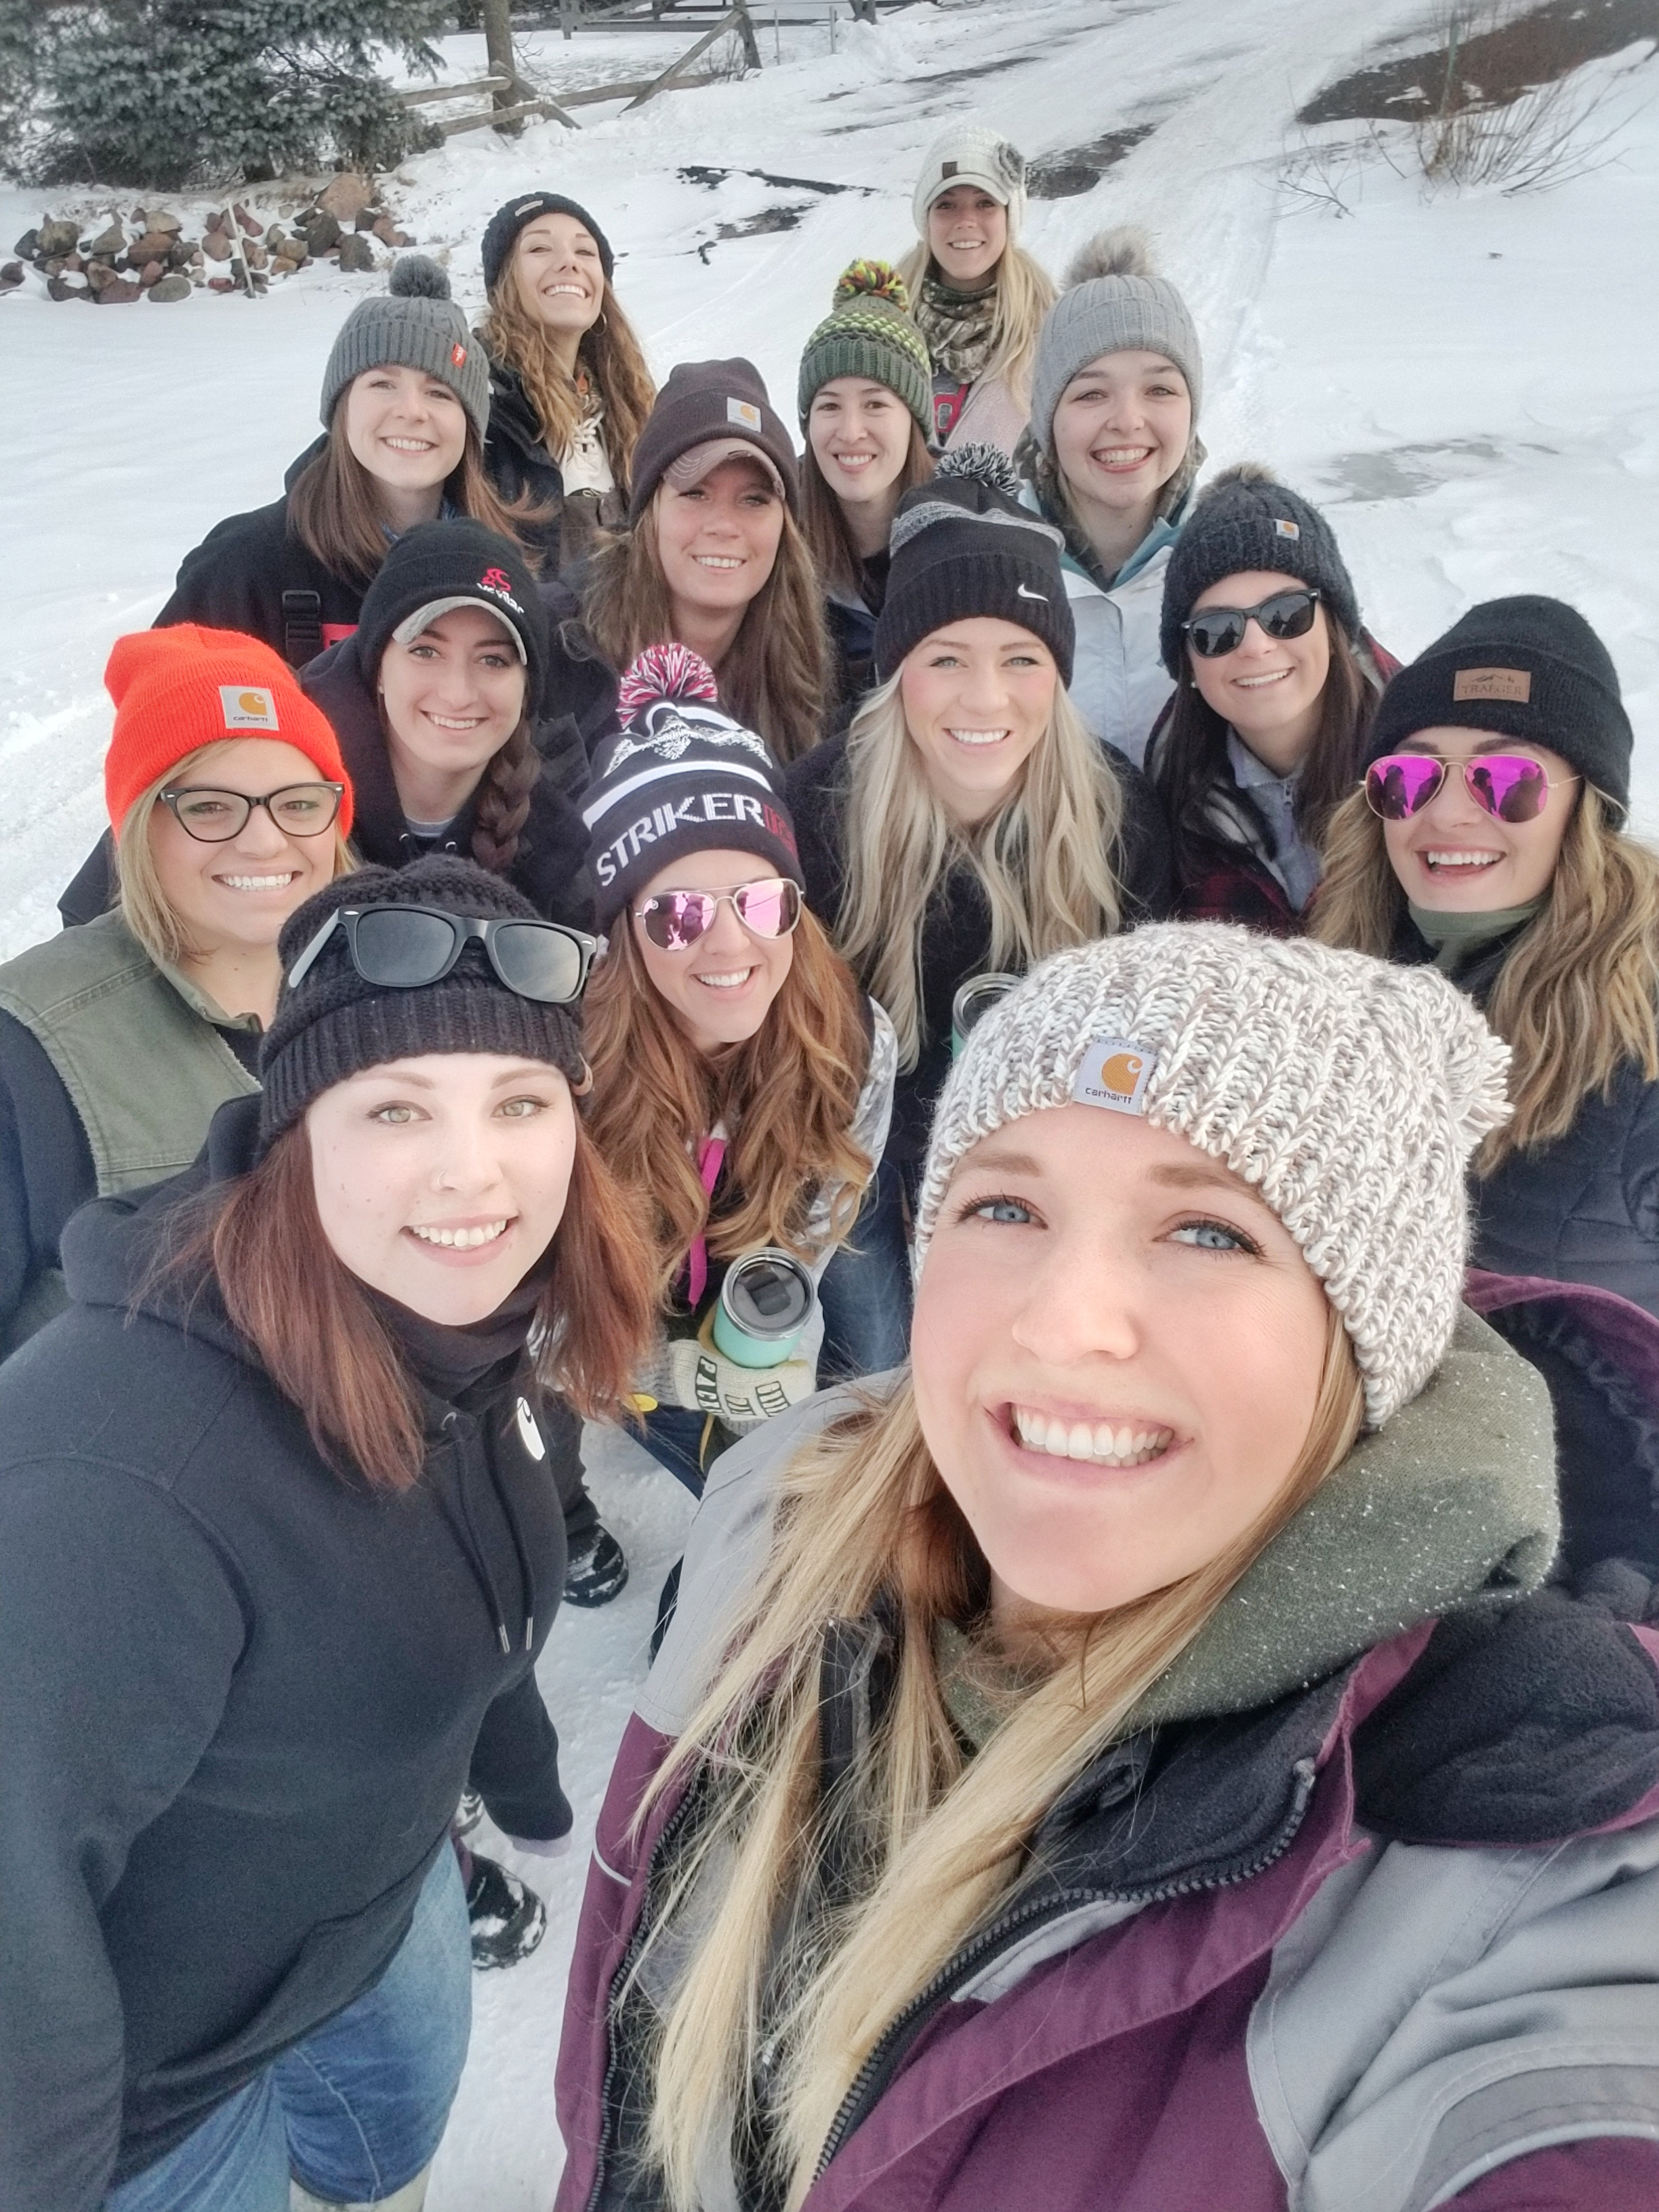 Pre-fishing selfie with some of the ladies from the 2019 Ladies Midwest Meetup.